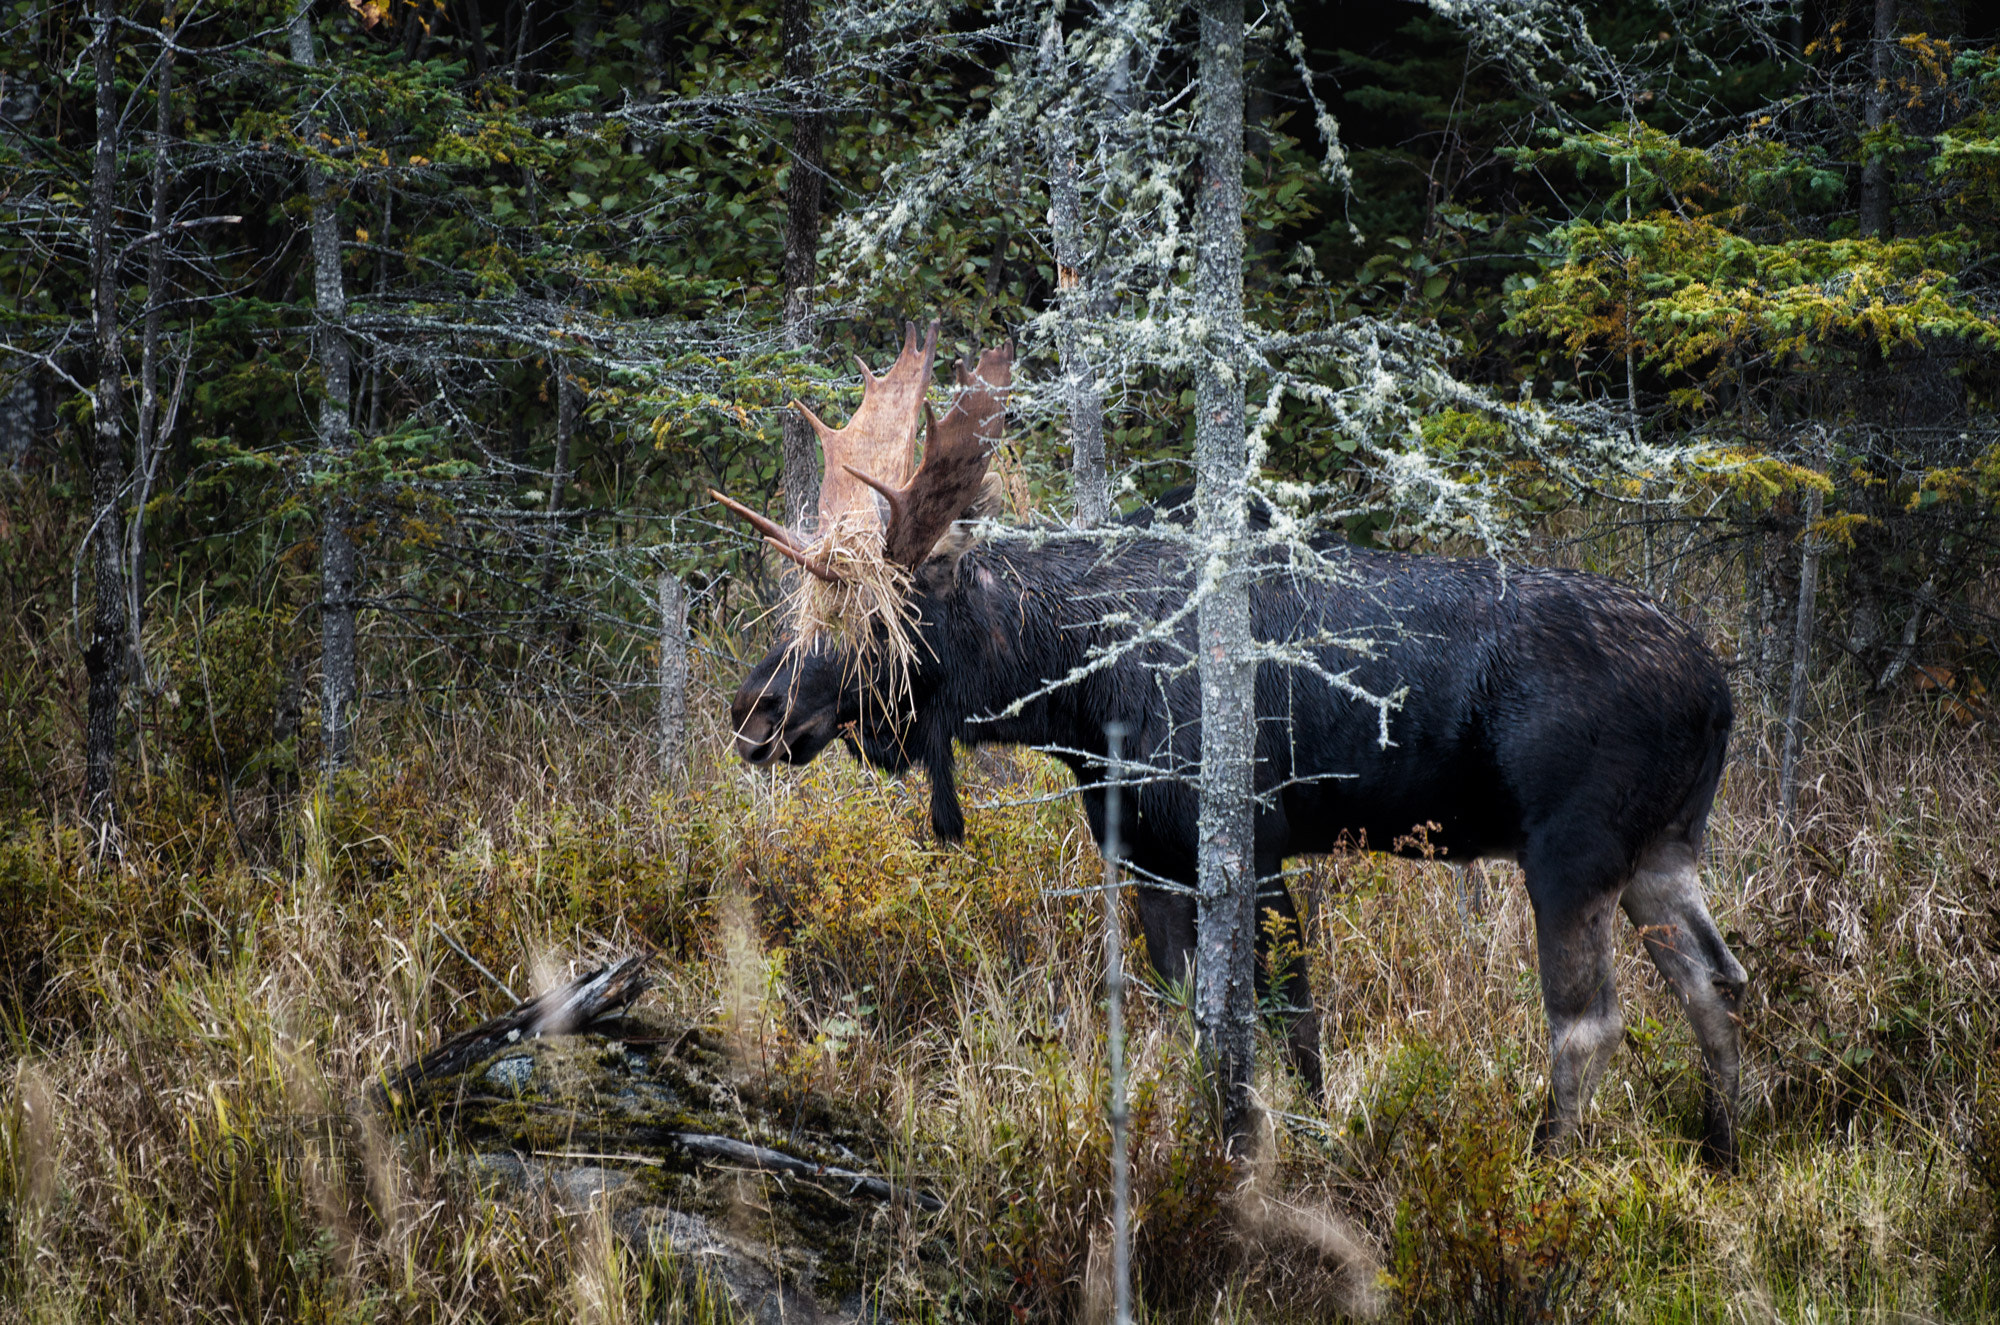 Photograph How To Hide If You're A Moose by Rob Hanson on 500px